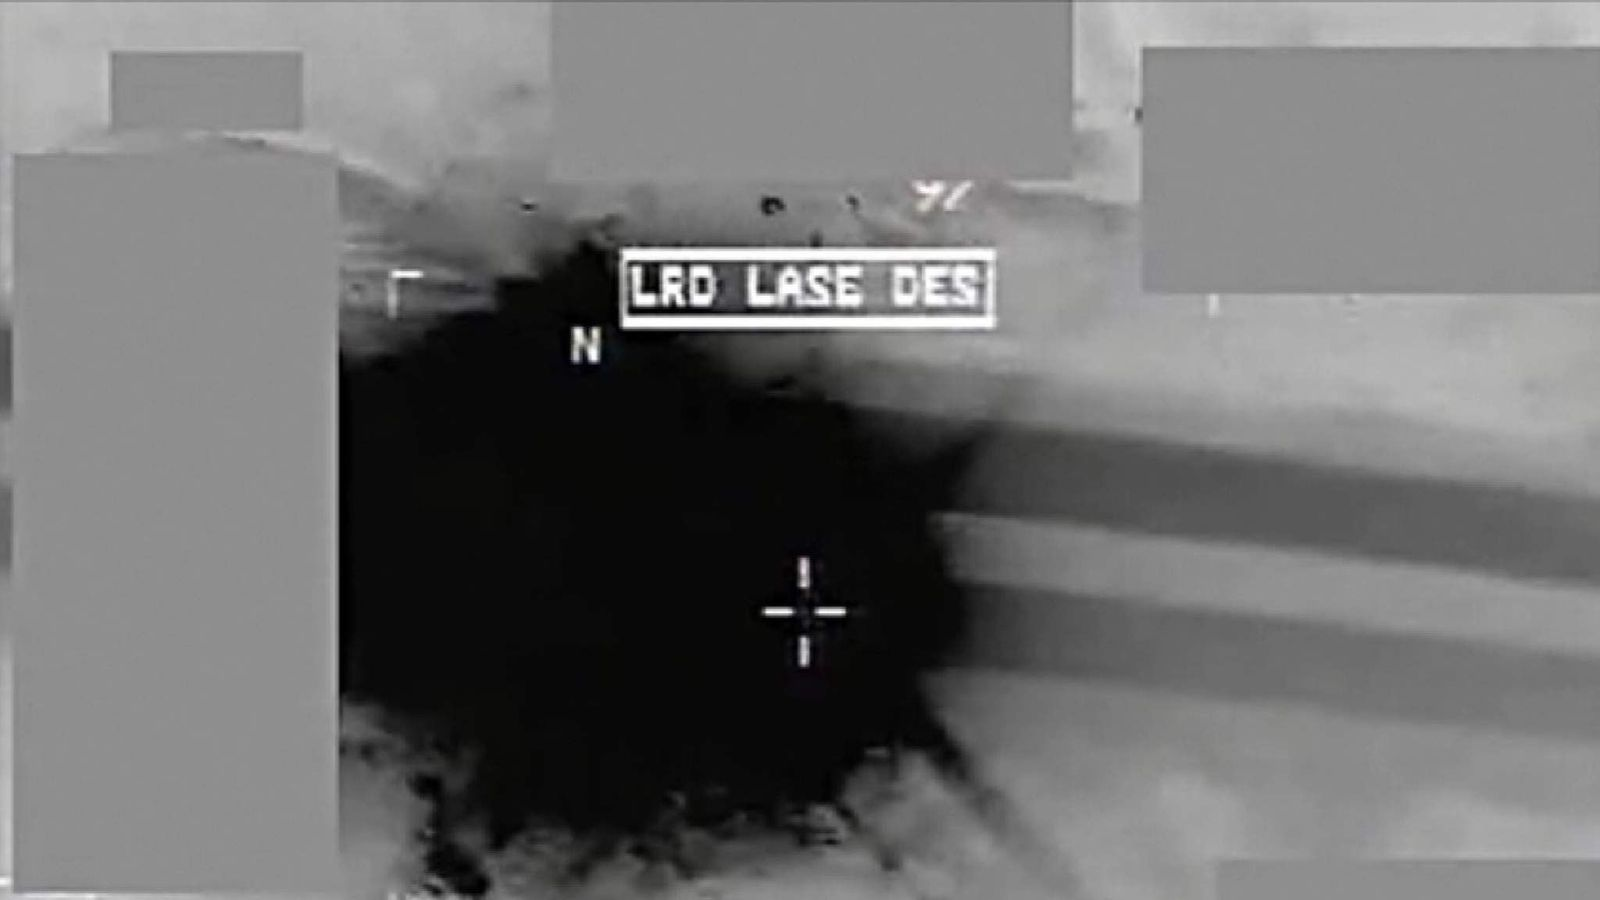 Ministry of Defence video showing an RAF missile attack on a terrorist supply truck